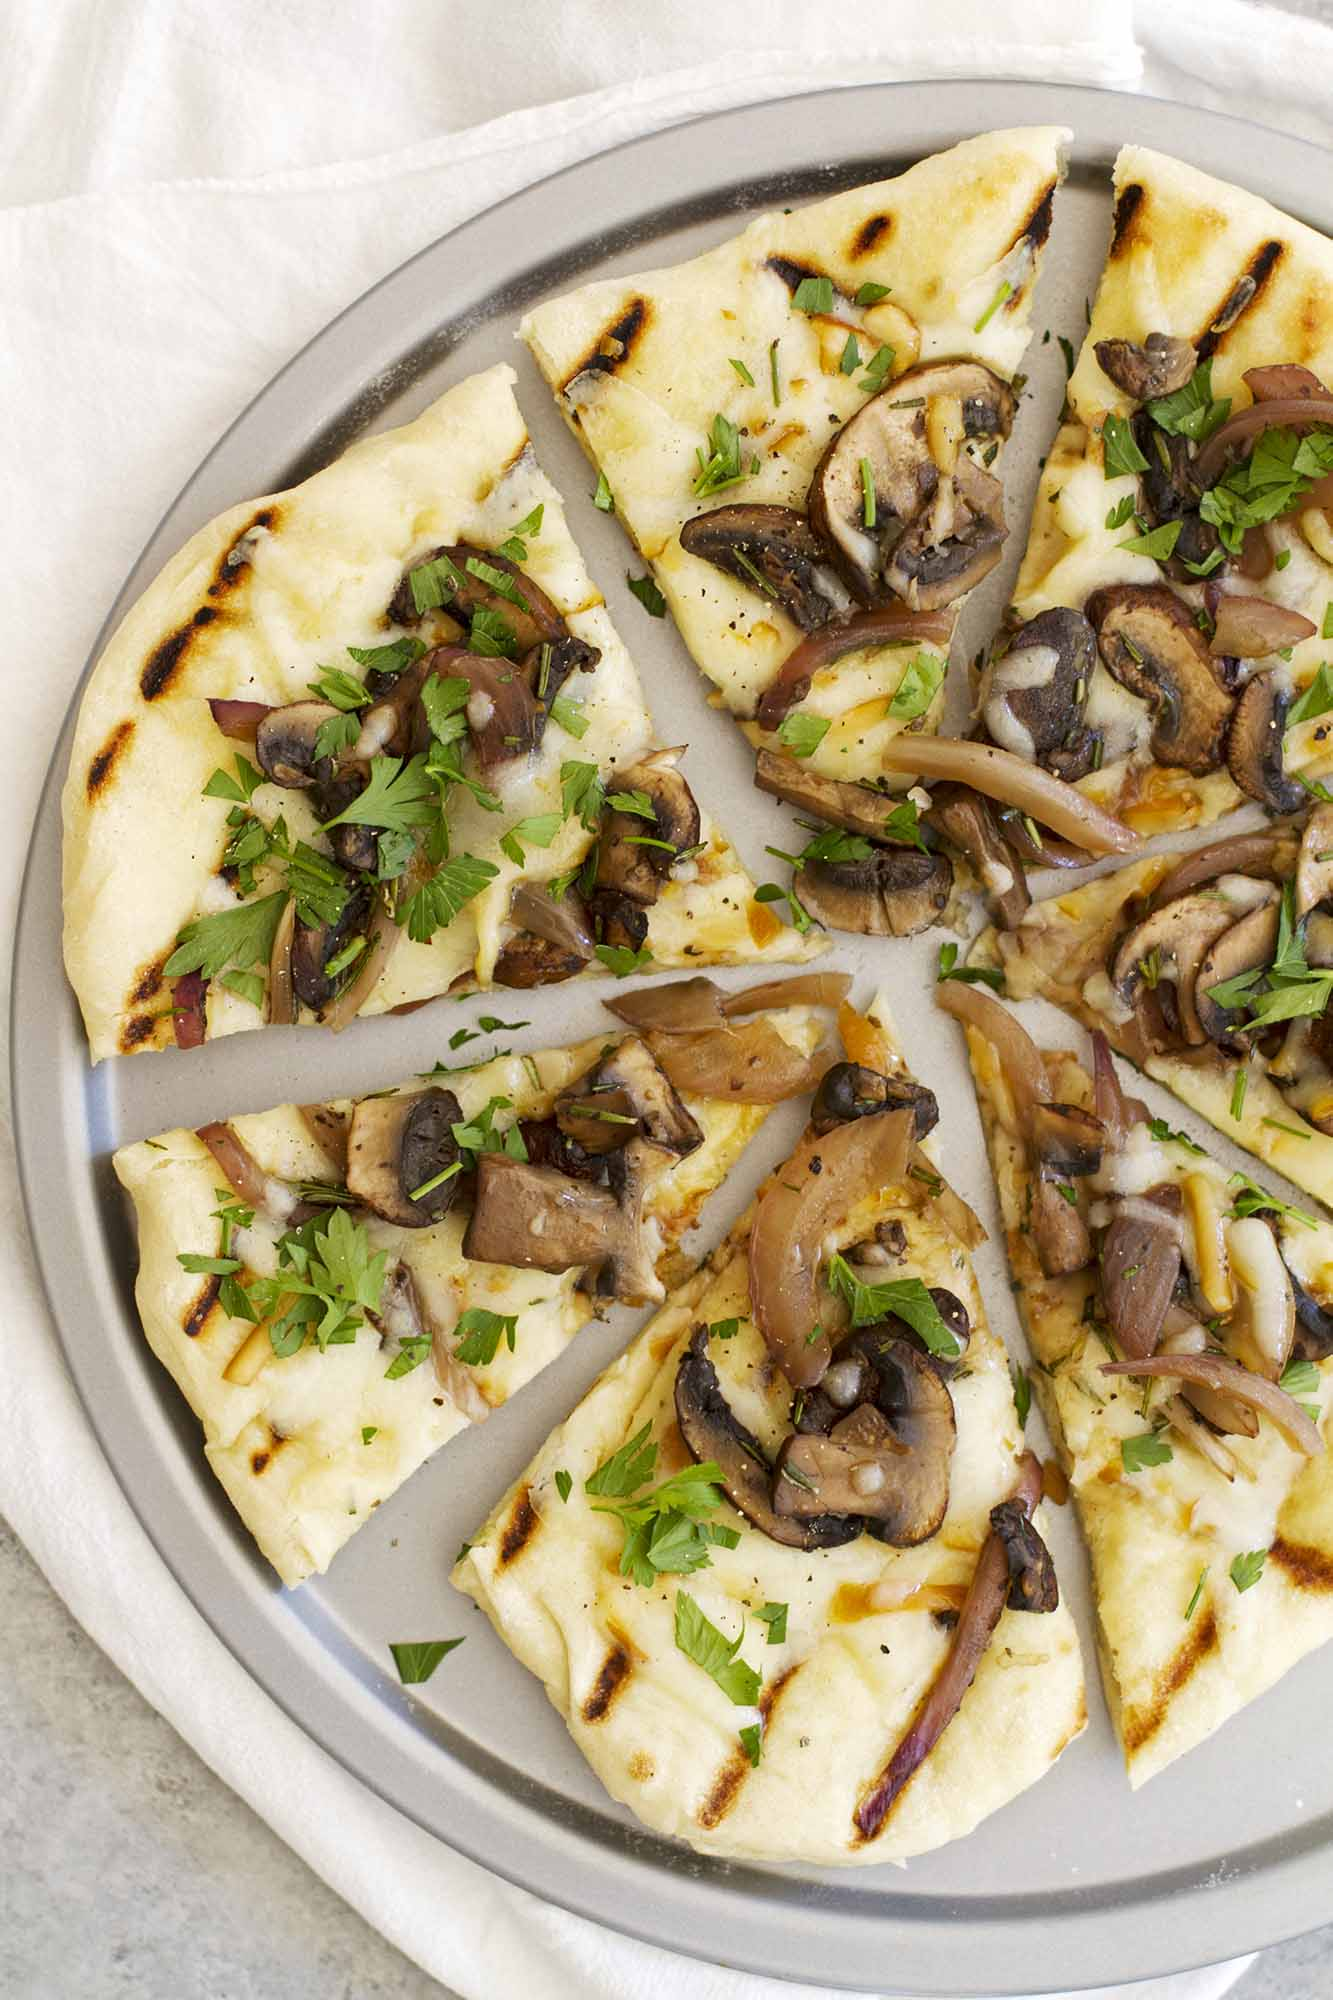 Grilled Mushroom Pizza with Rosemary and Smoked Mozzarella | girlversusdough.com @girlversusdough